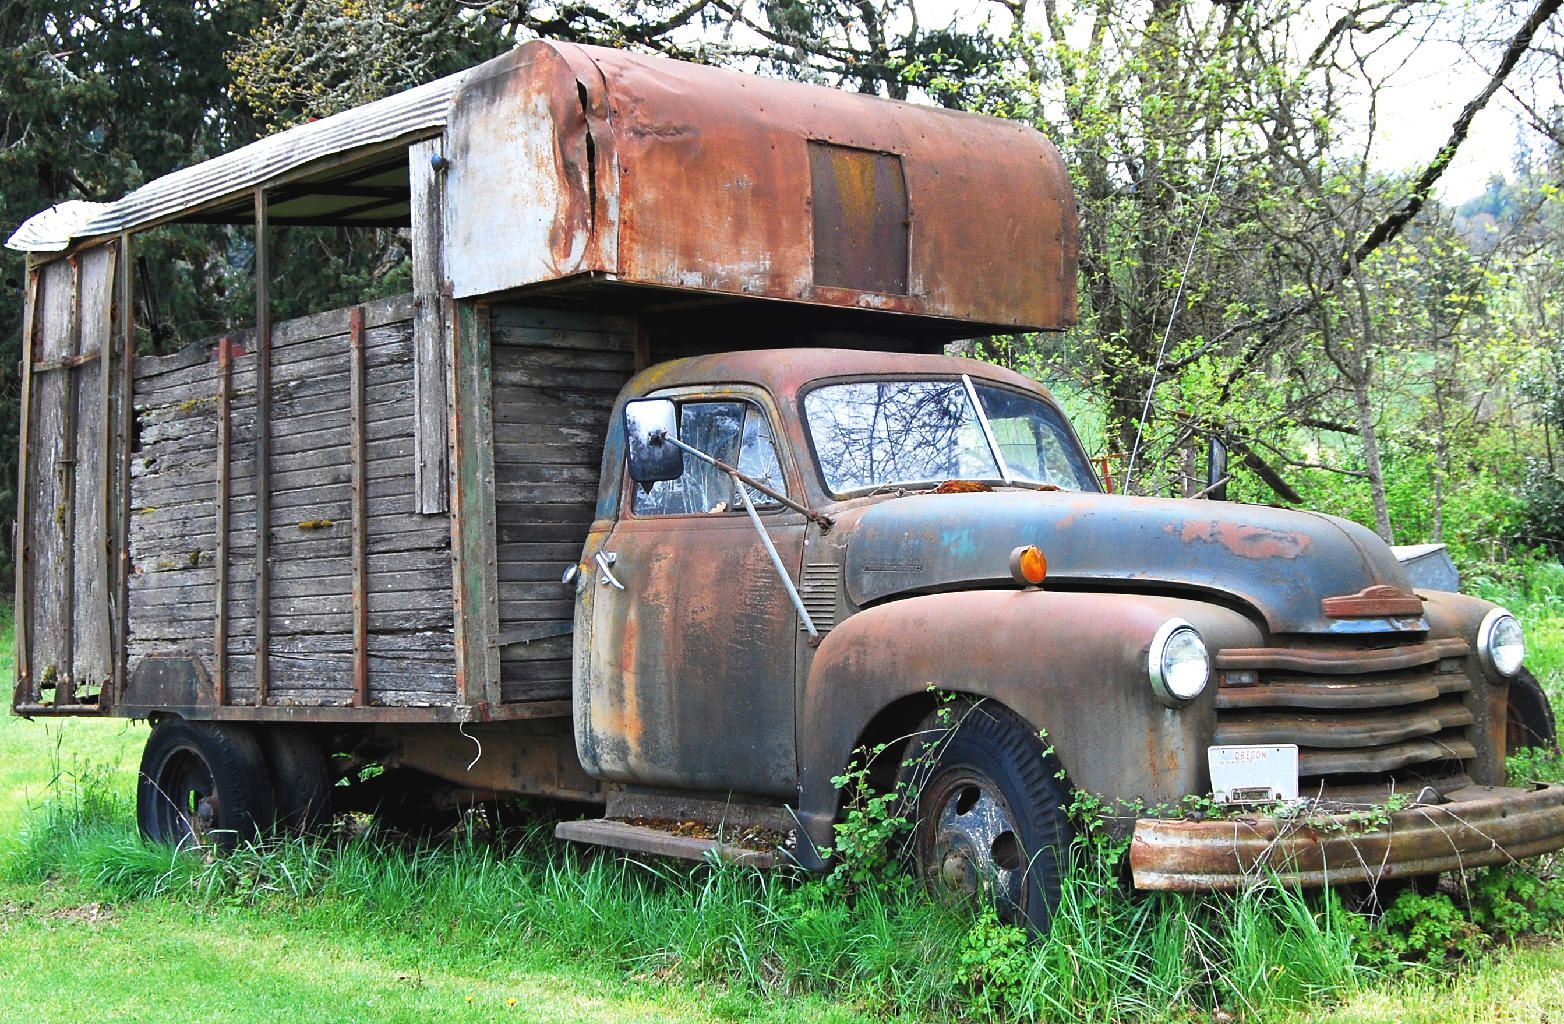 Old abandoned rusty truck, Sweden